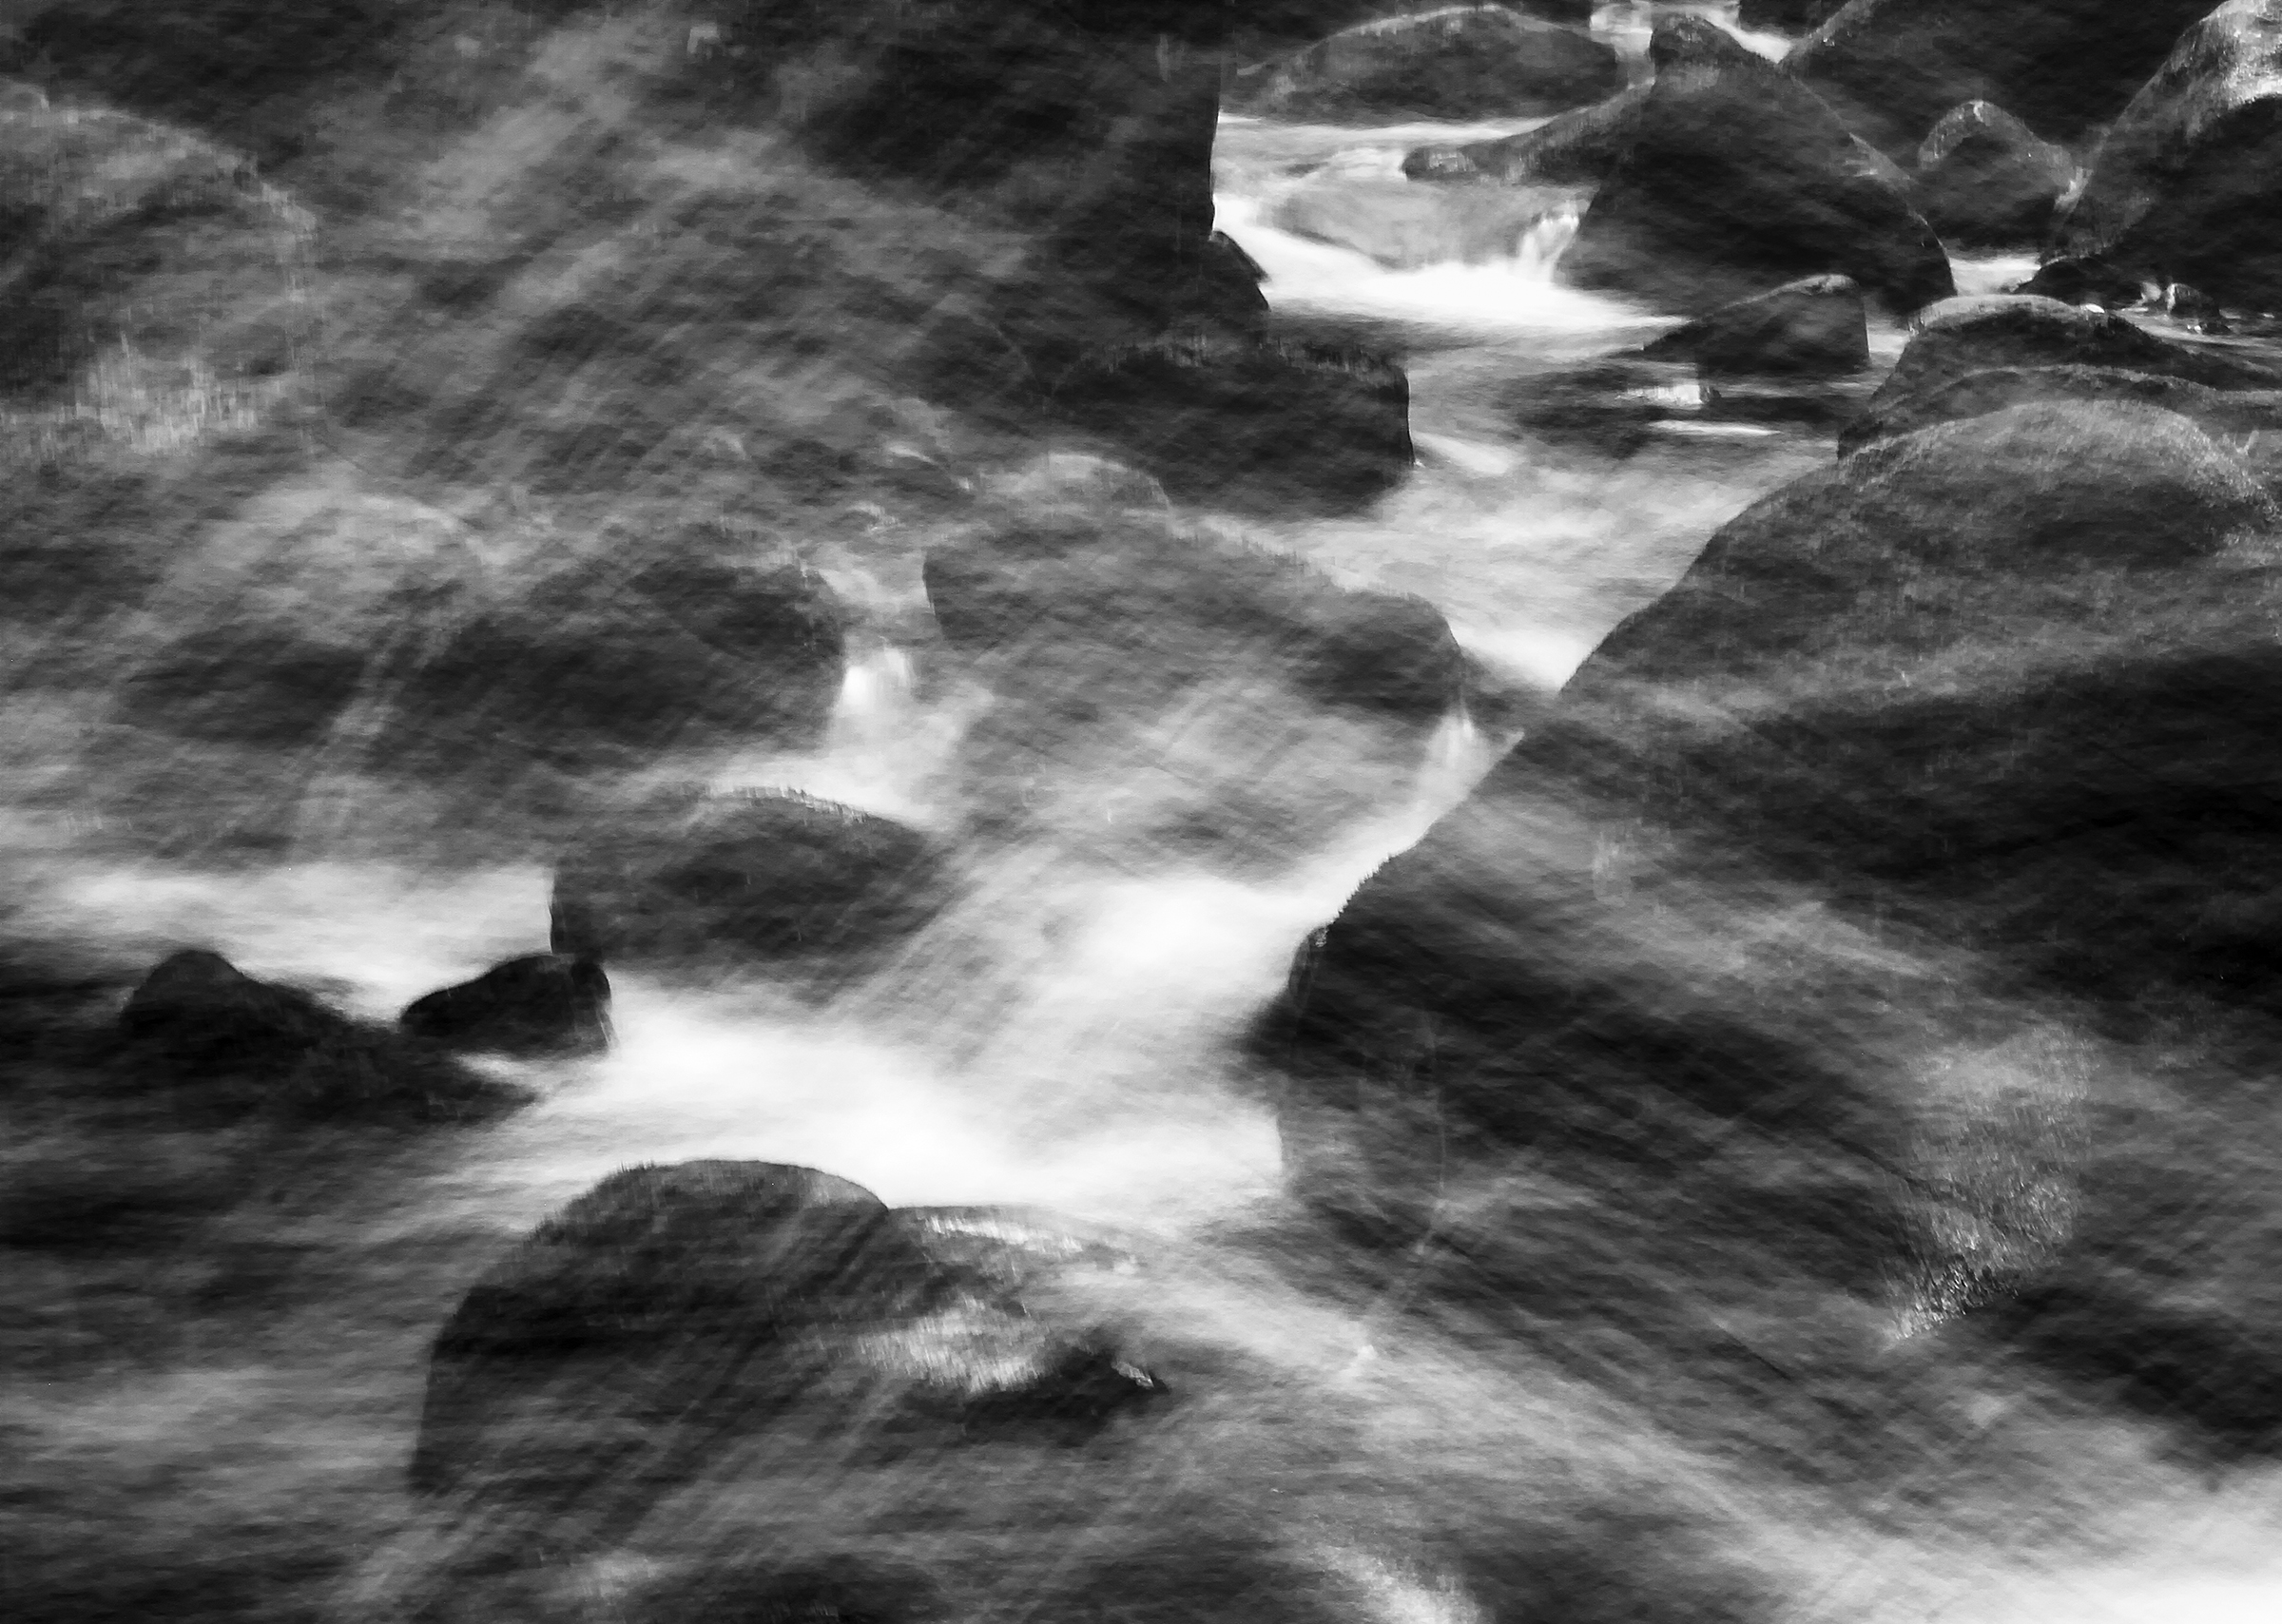 My last exposure, taken as my tripod and camera slid into the Saluda river.  Canon 7D, Canon 24-70mm f/2.8L. ISO 100 6.0 sec